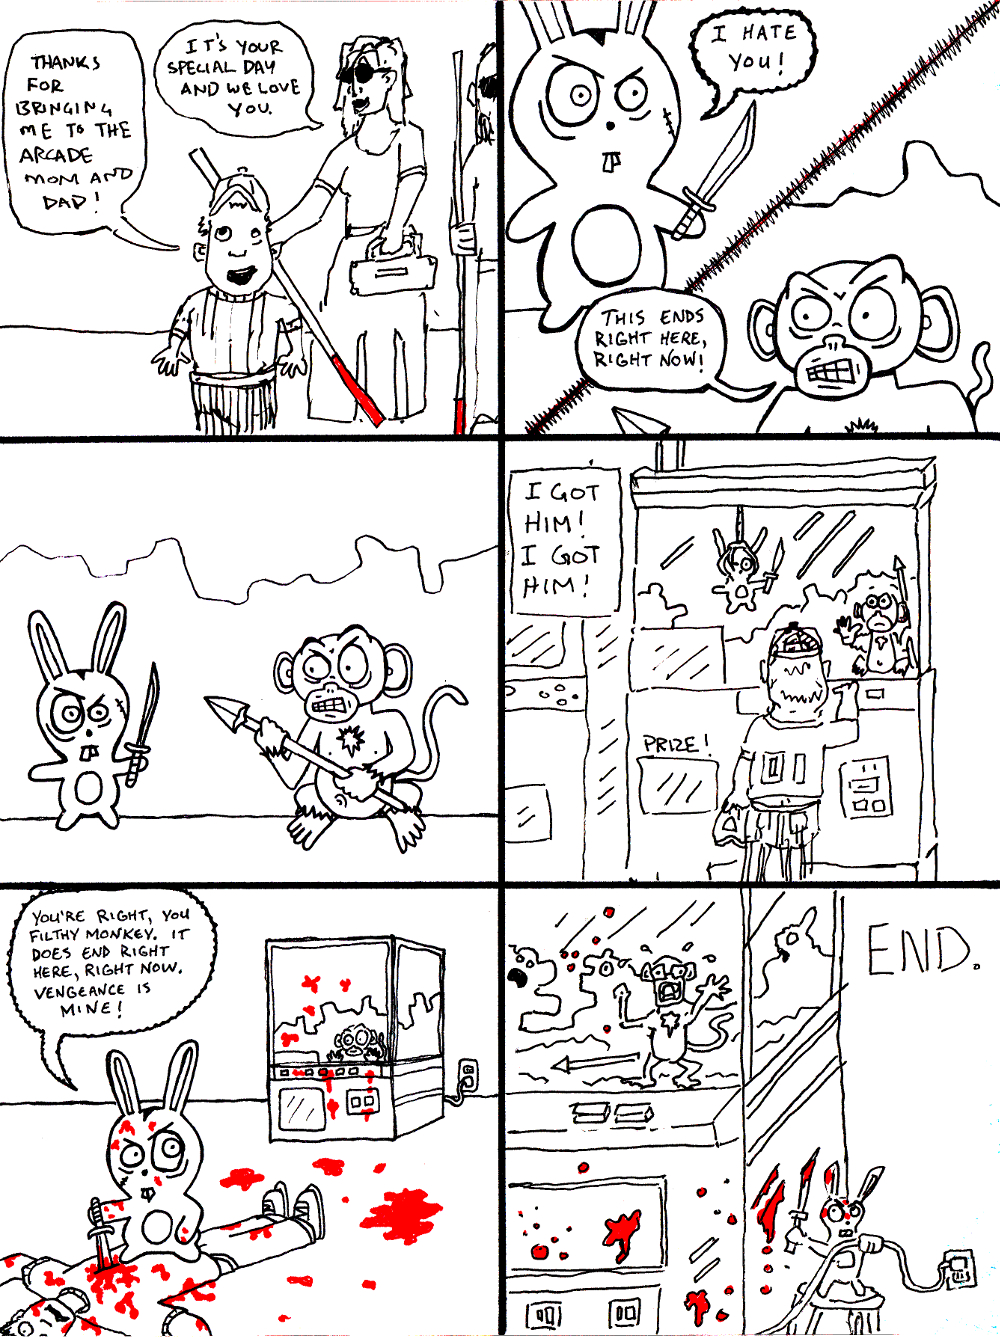 CLAW MACHINE (by Marx McNeill and Nate Crone)